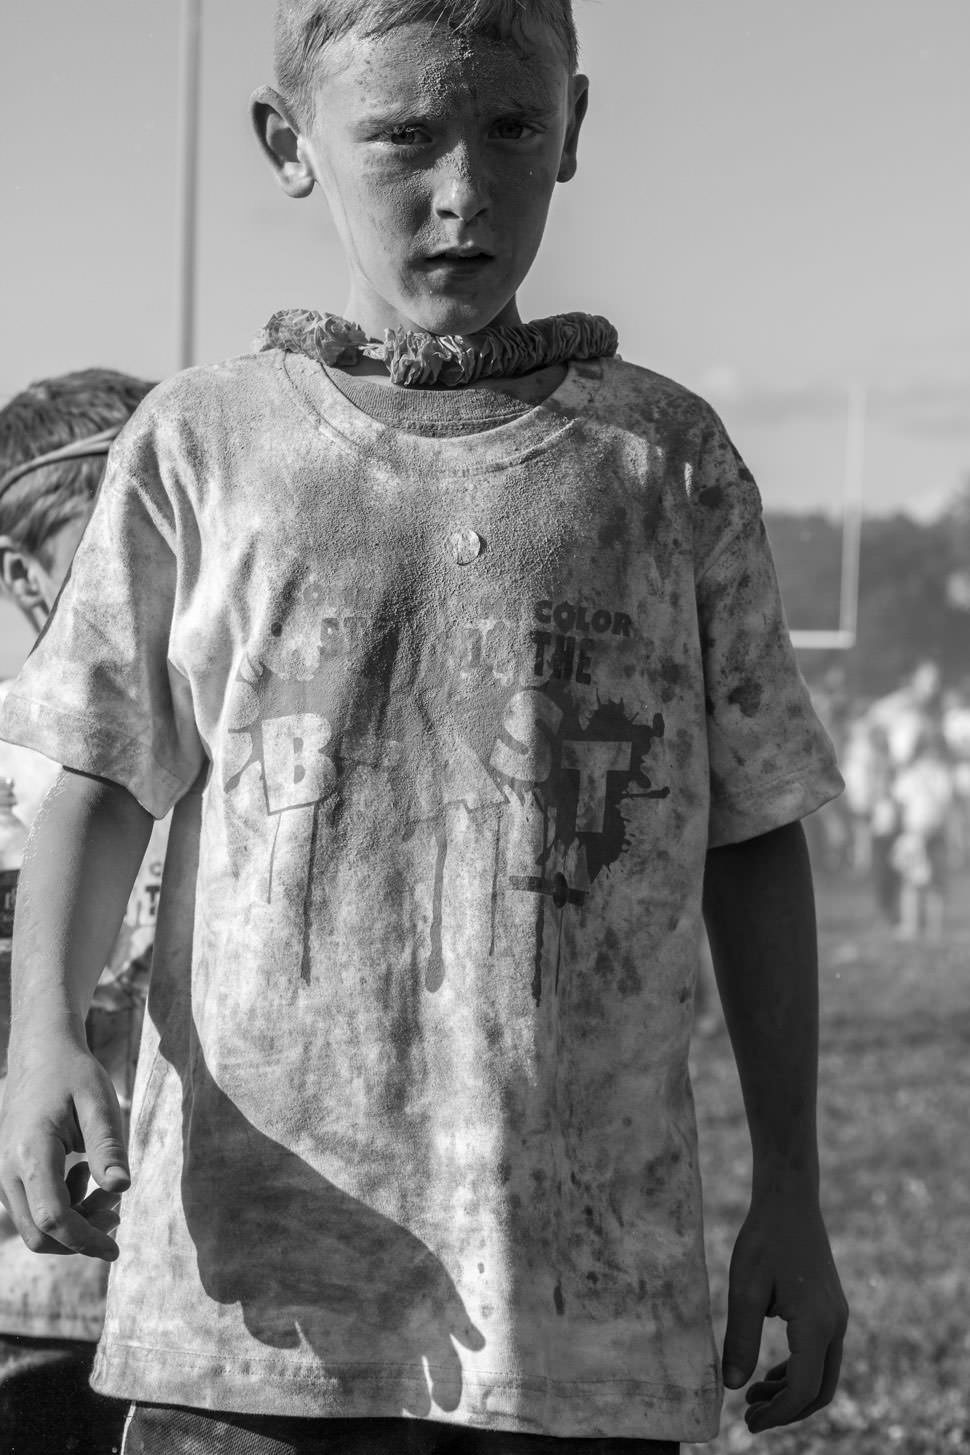 BW Color Run kid